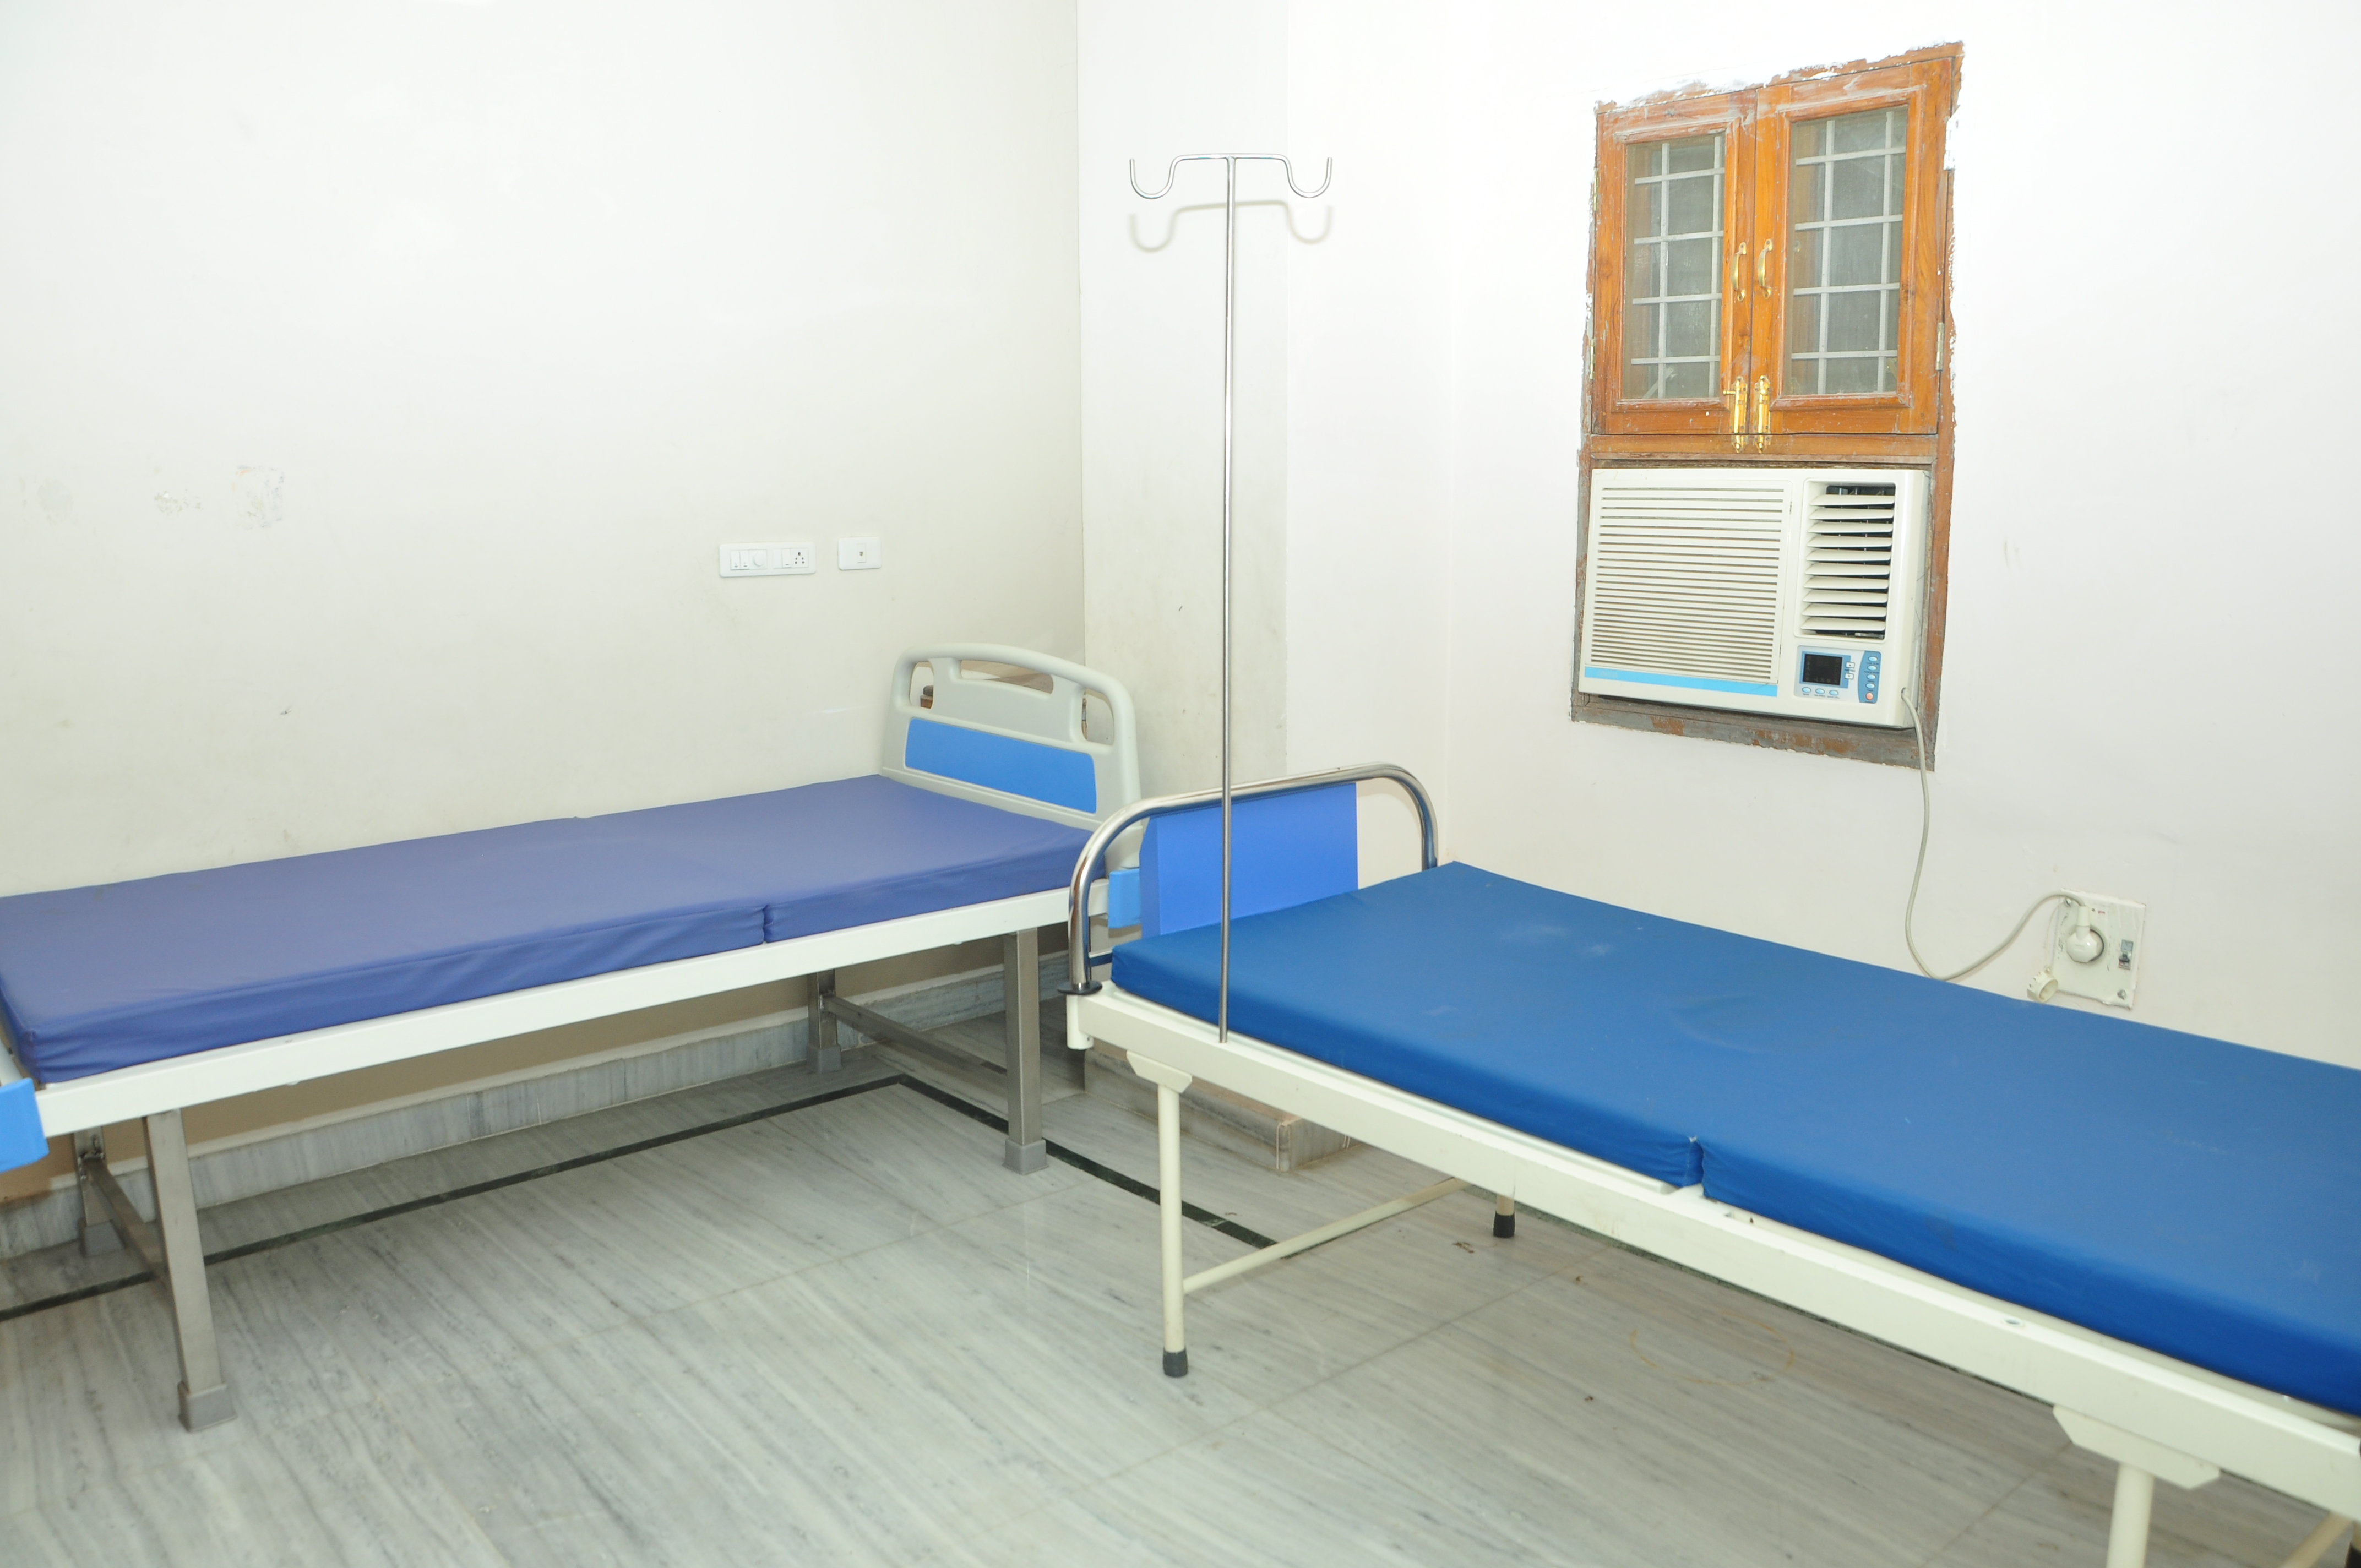 Bed allocation for patient